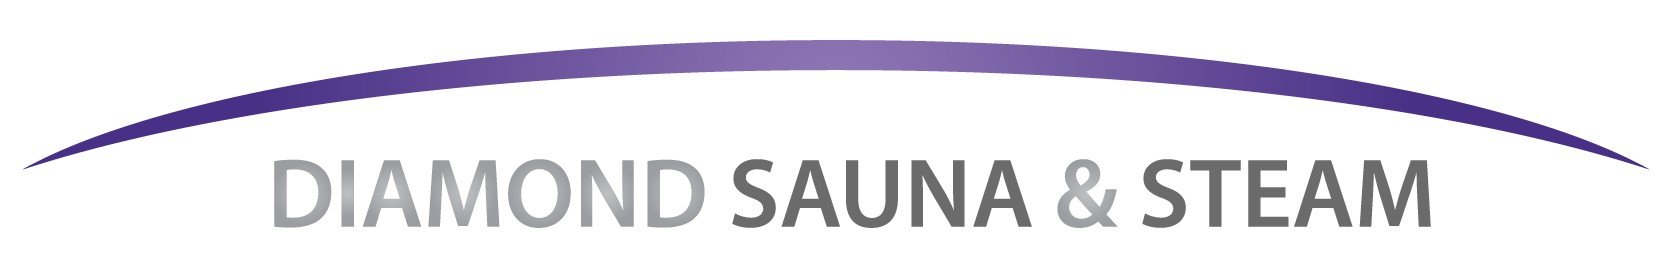 diamond sauna and steam logo